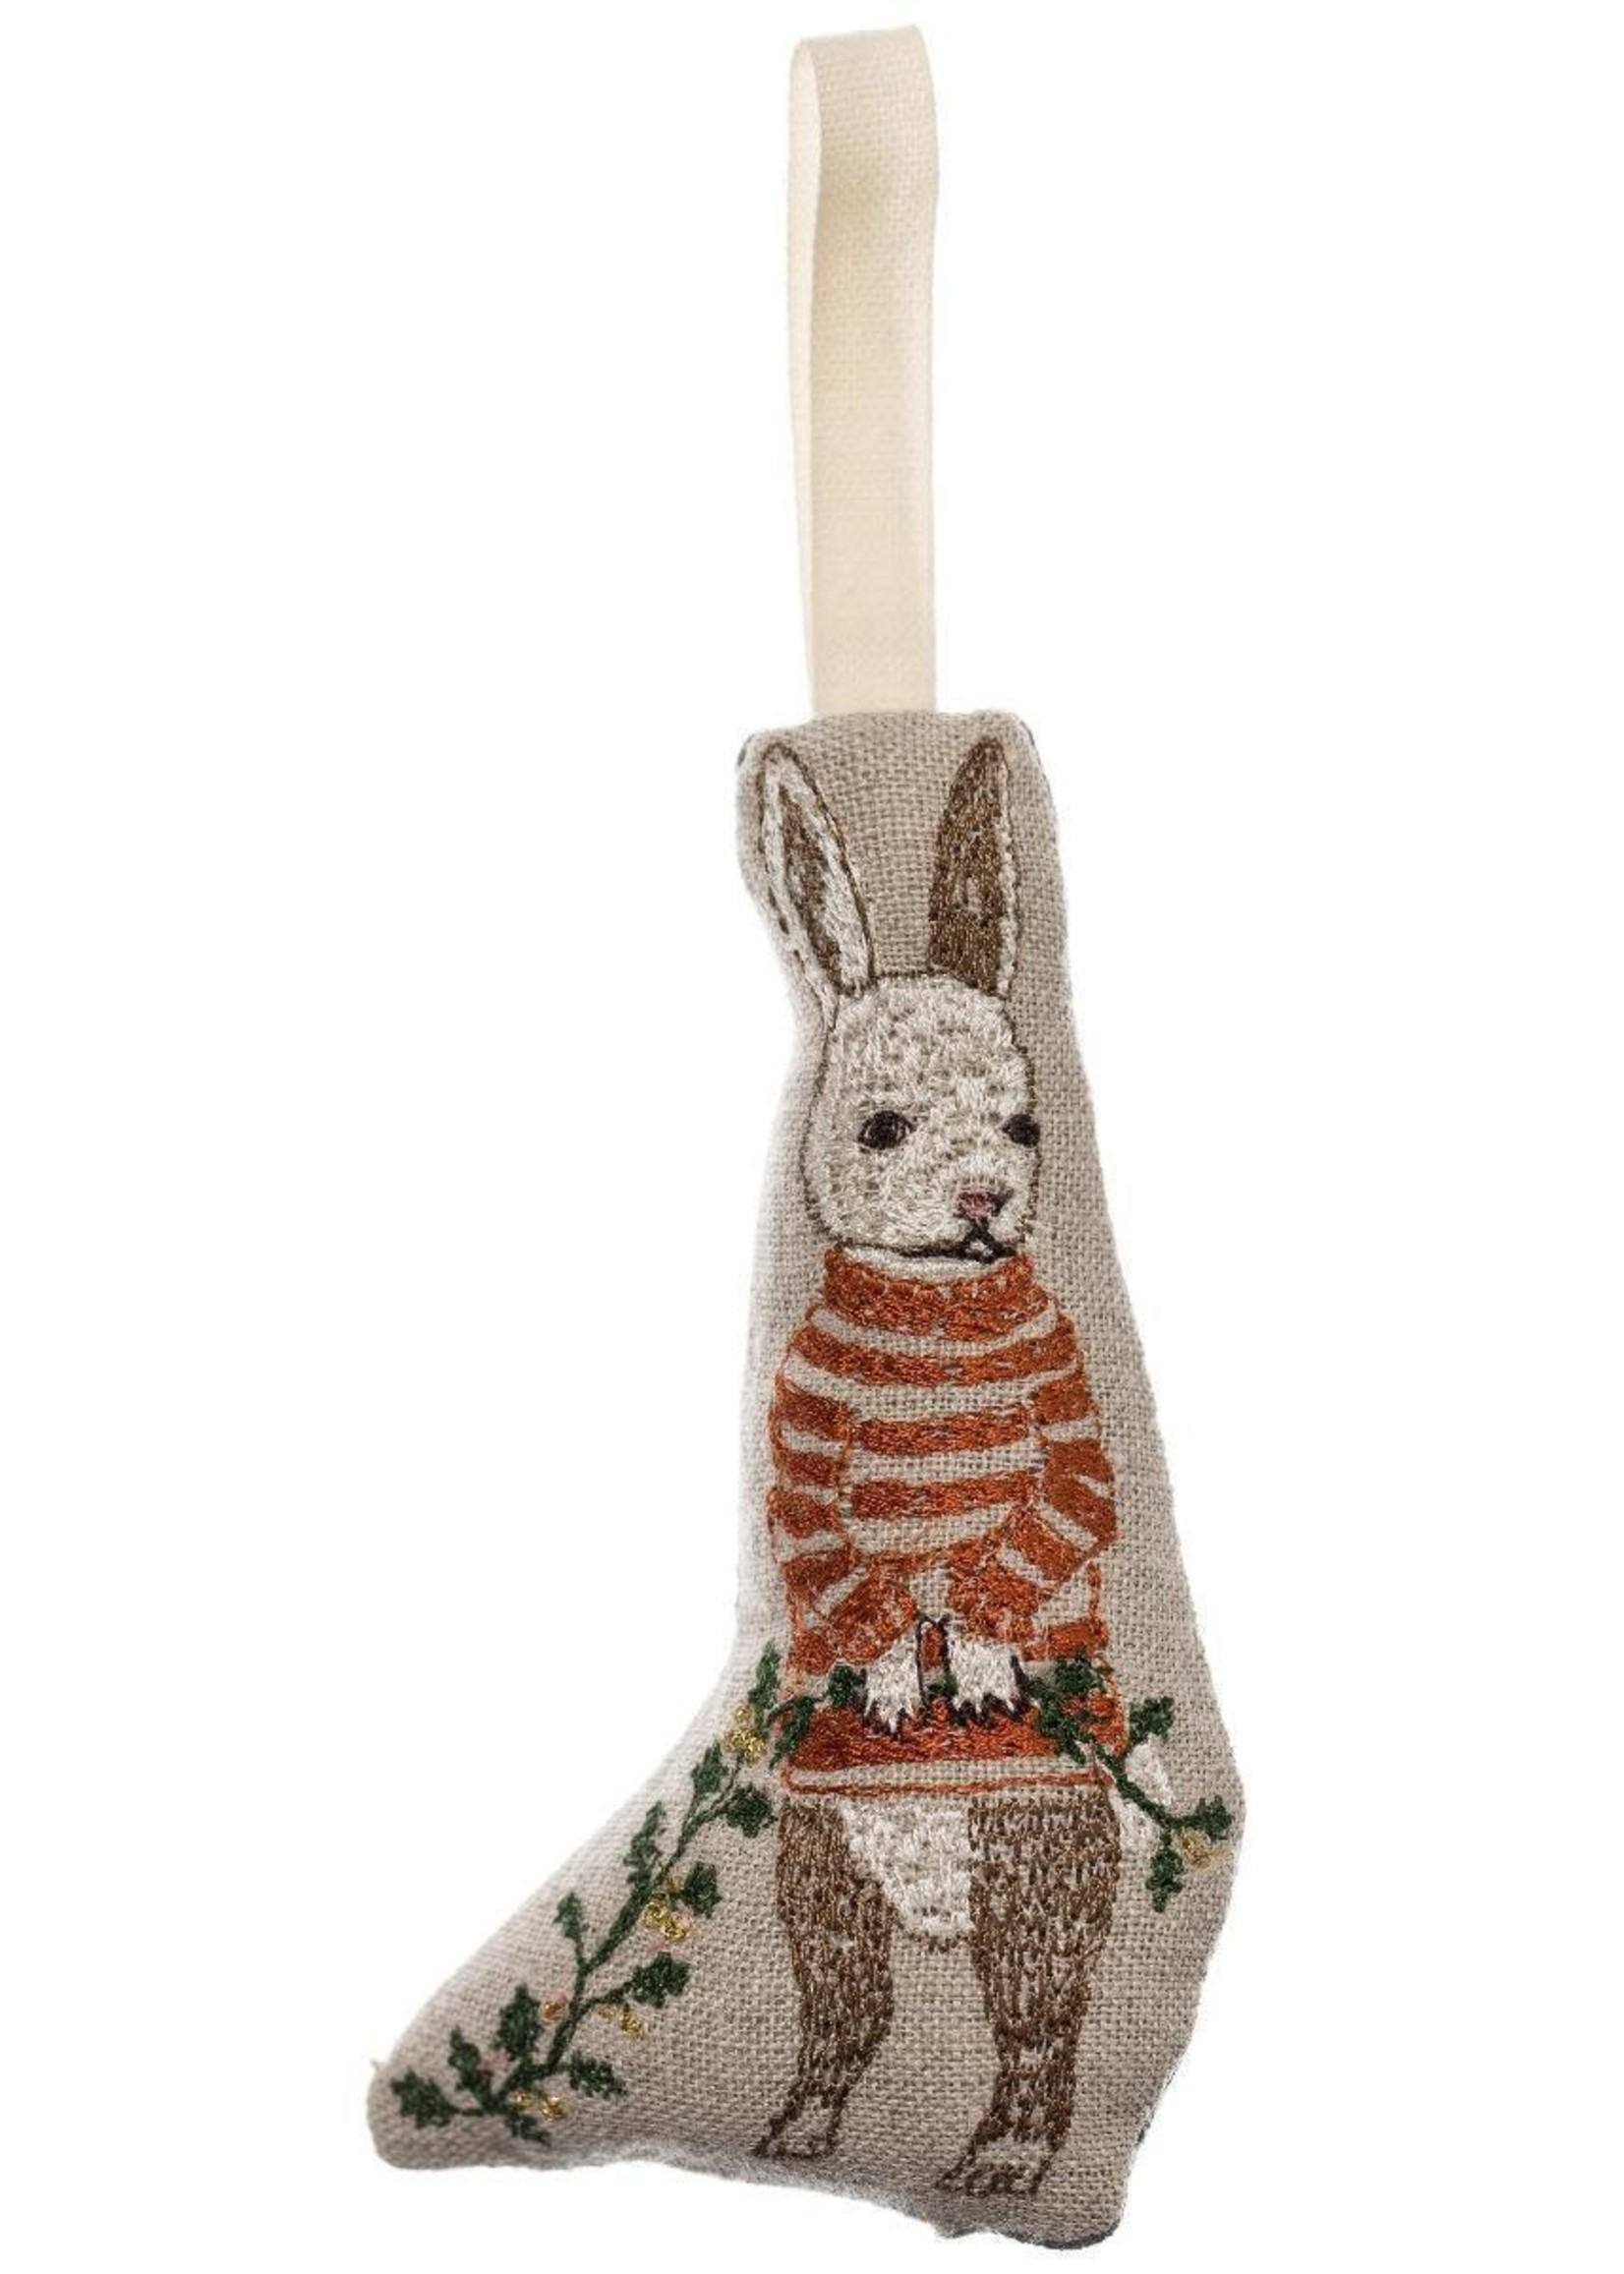 Coral and Tusk Ornament - Bunny with Holly